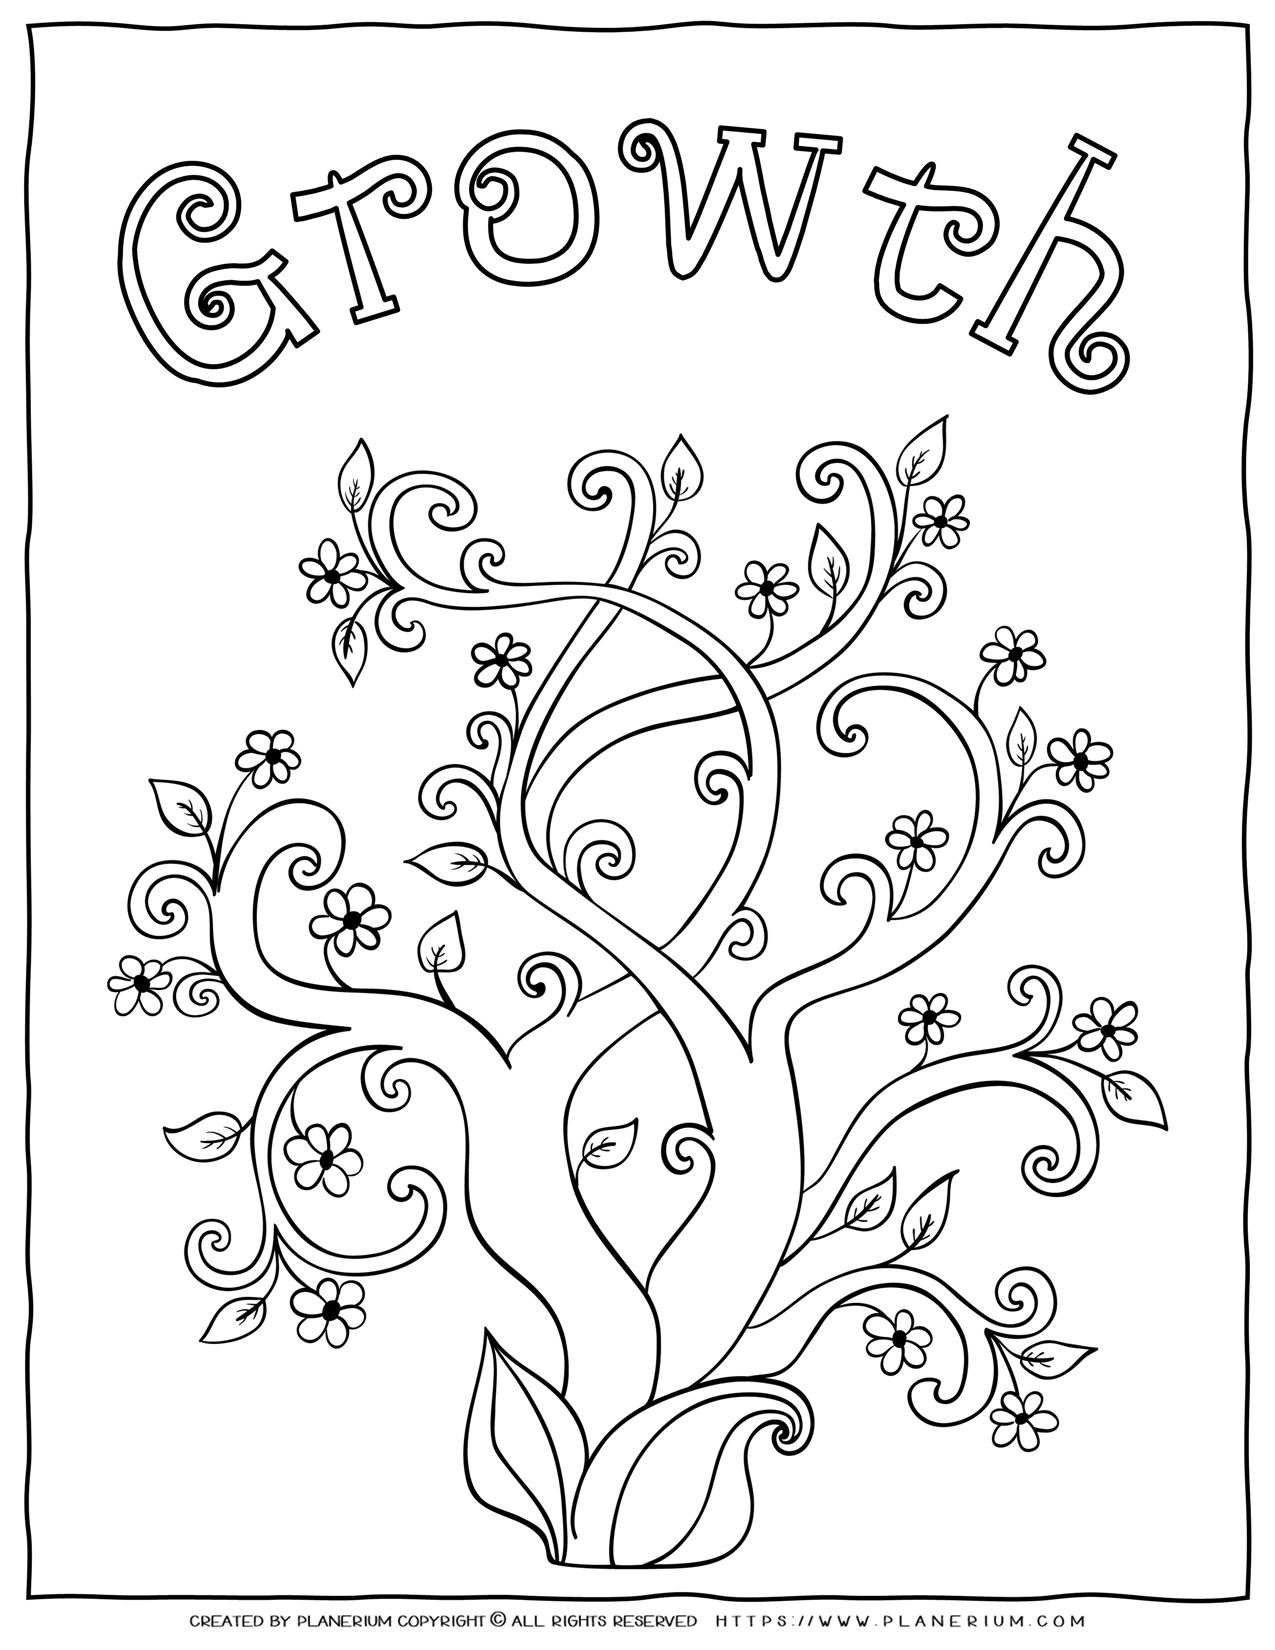 Adult Coloring Pages - Mindfulness Growth | Planerium